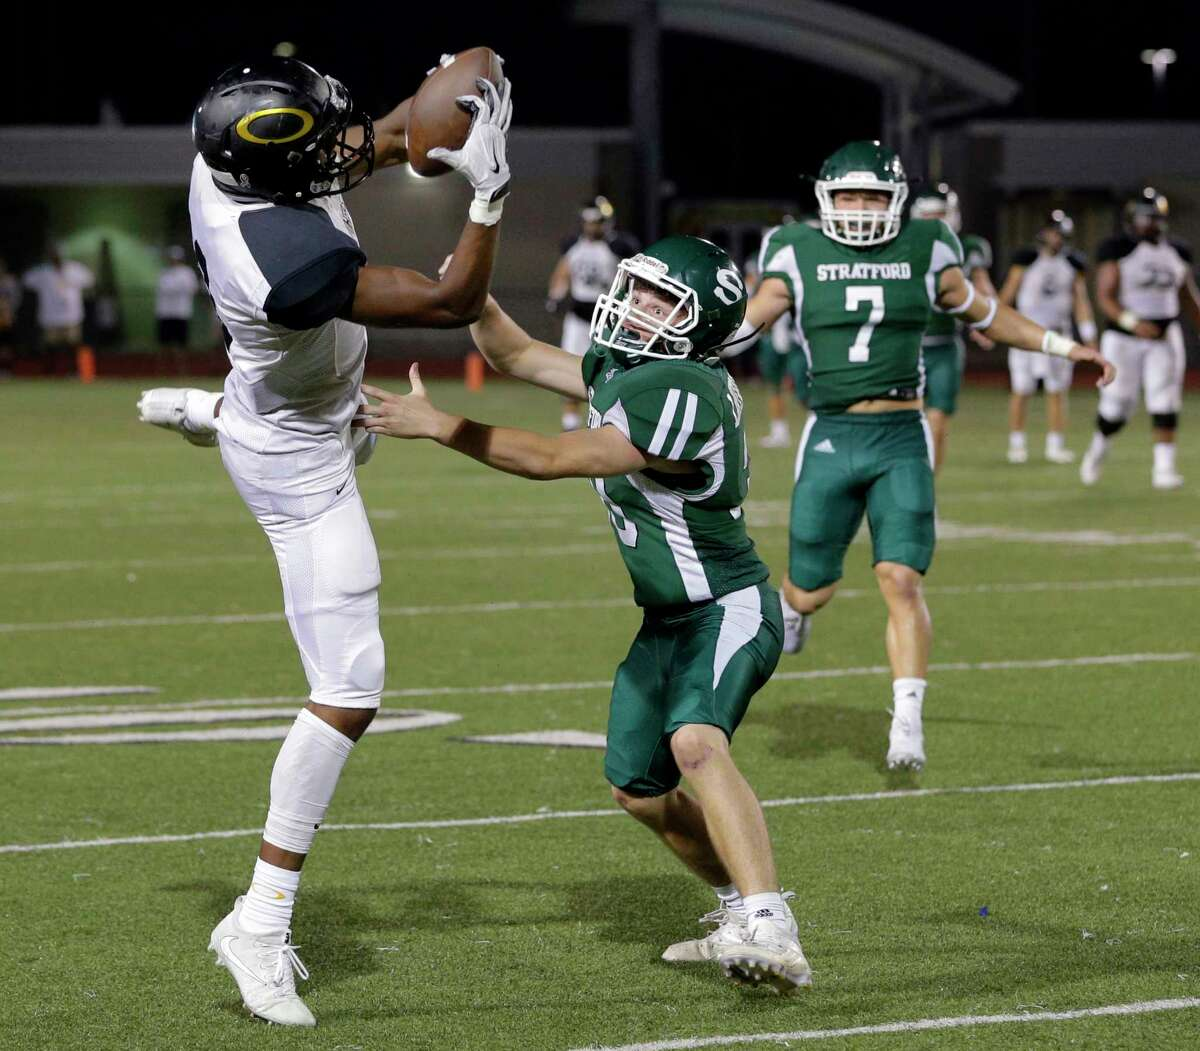 Klein Oak's Tyler Hudson (3) pulls in a reception over Stratford's Walker Lavercombe (30) as Jonathan Ziobrowski (7) closes in during the second half of their game, Nov. 2, 2017, in Spring, TX. (Michael Wyke / For the Chronicle)